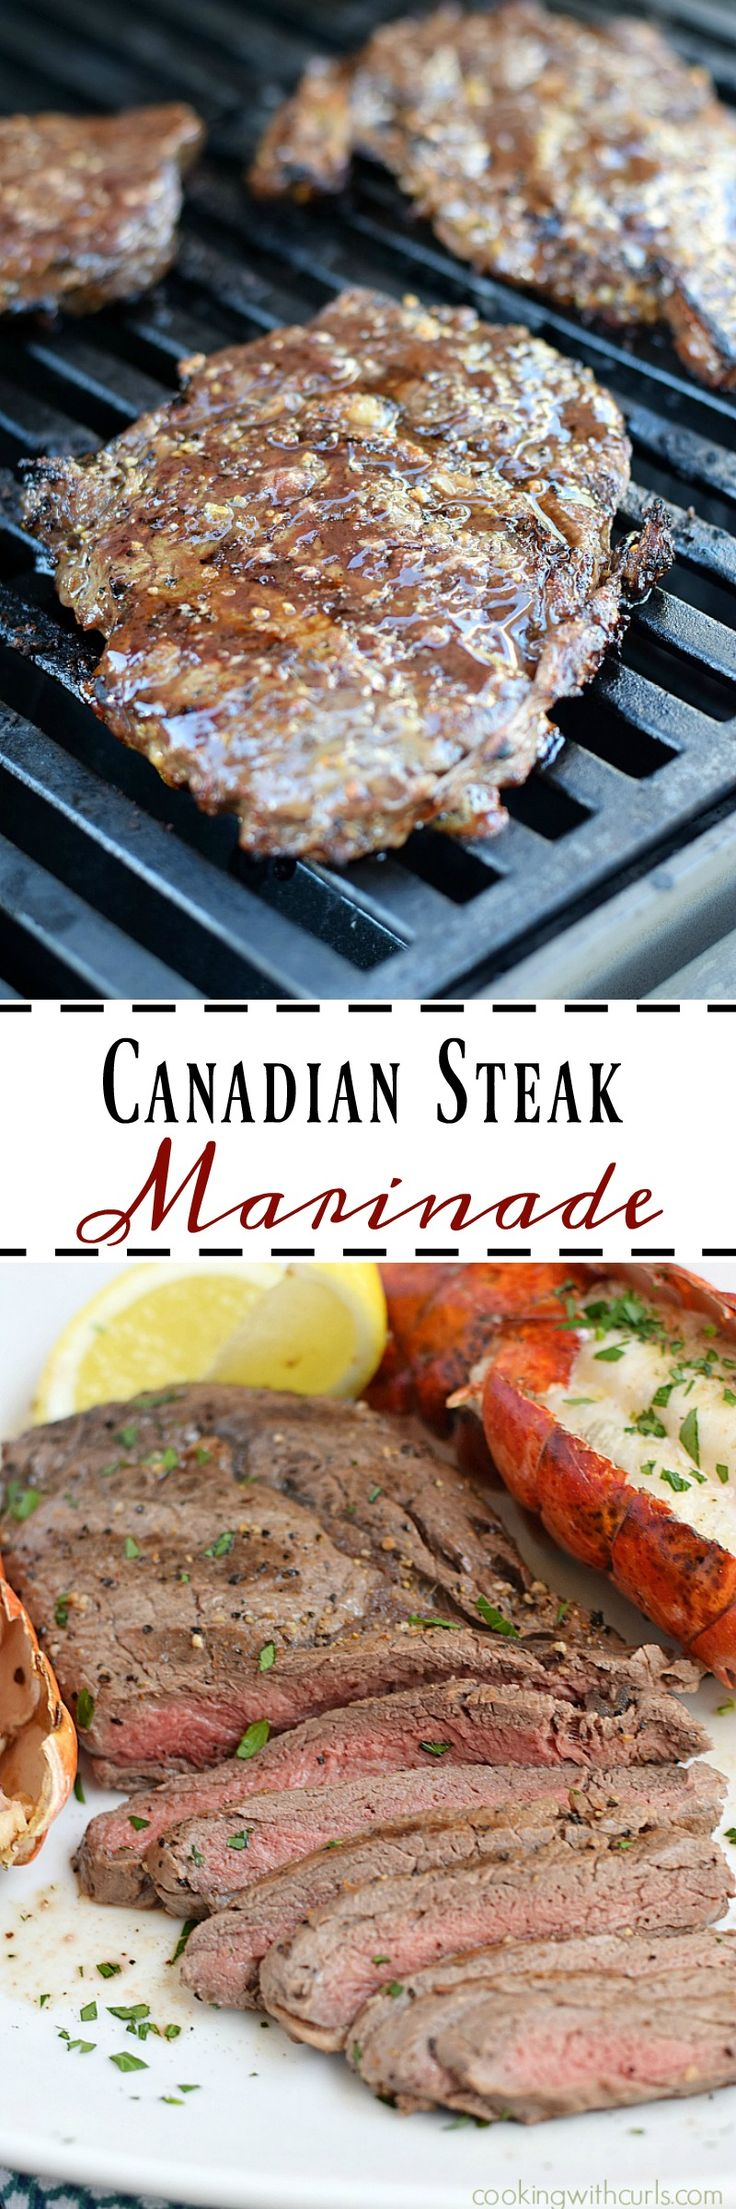 This Canadian Steak Marinade only has four ingredients, but it adds tons of flavor to your grilled steaks | cookingwithcurls.com